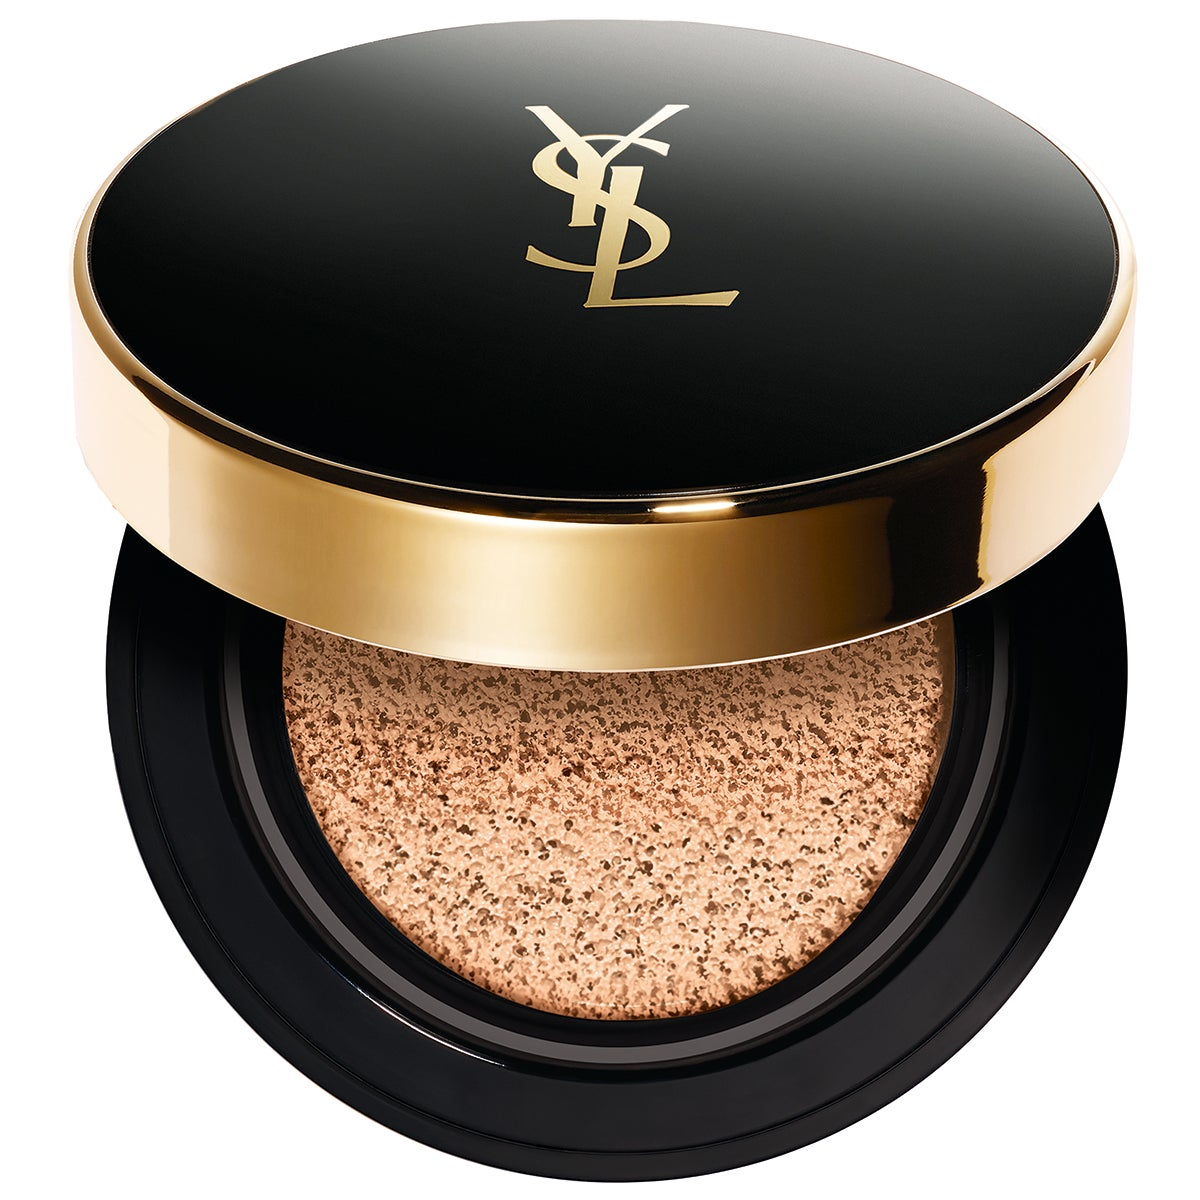 Yves Saint Laurent Encre de Peau Cushion Foundation